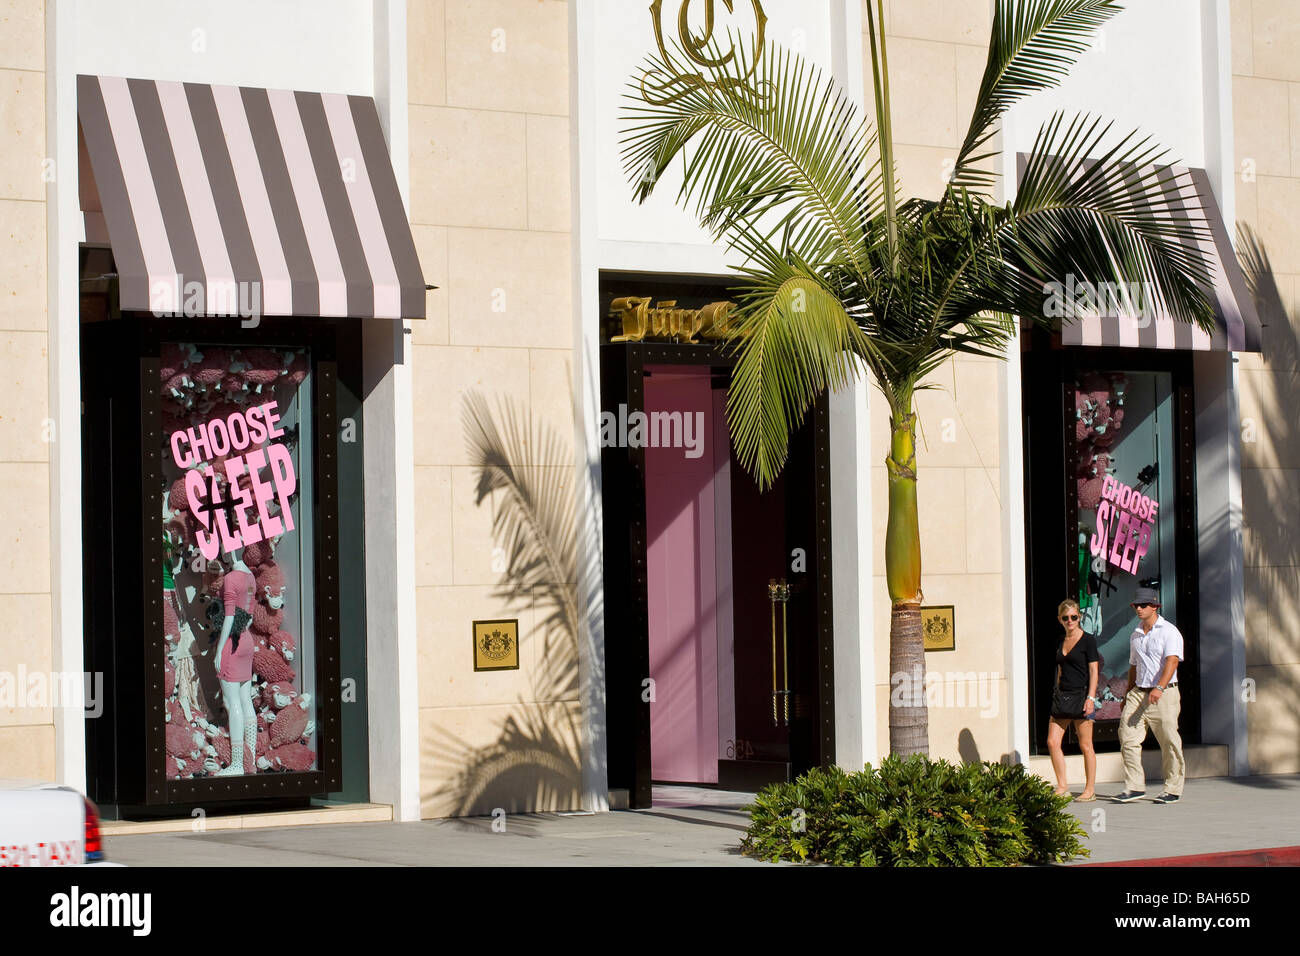 United States, California, Los Angeles, Beverly Hills, Rodeo Drive, couple in front of Juicy Couture store - Stock Image